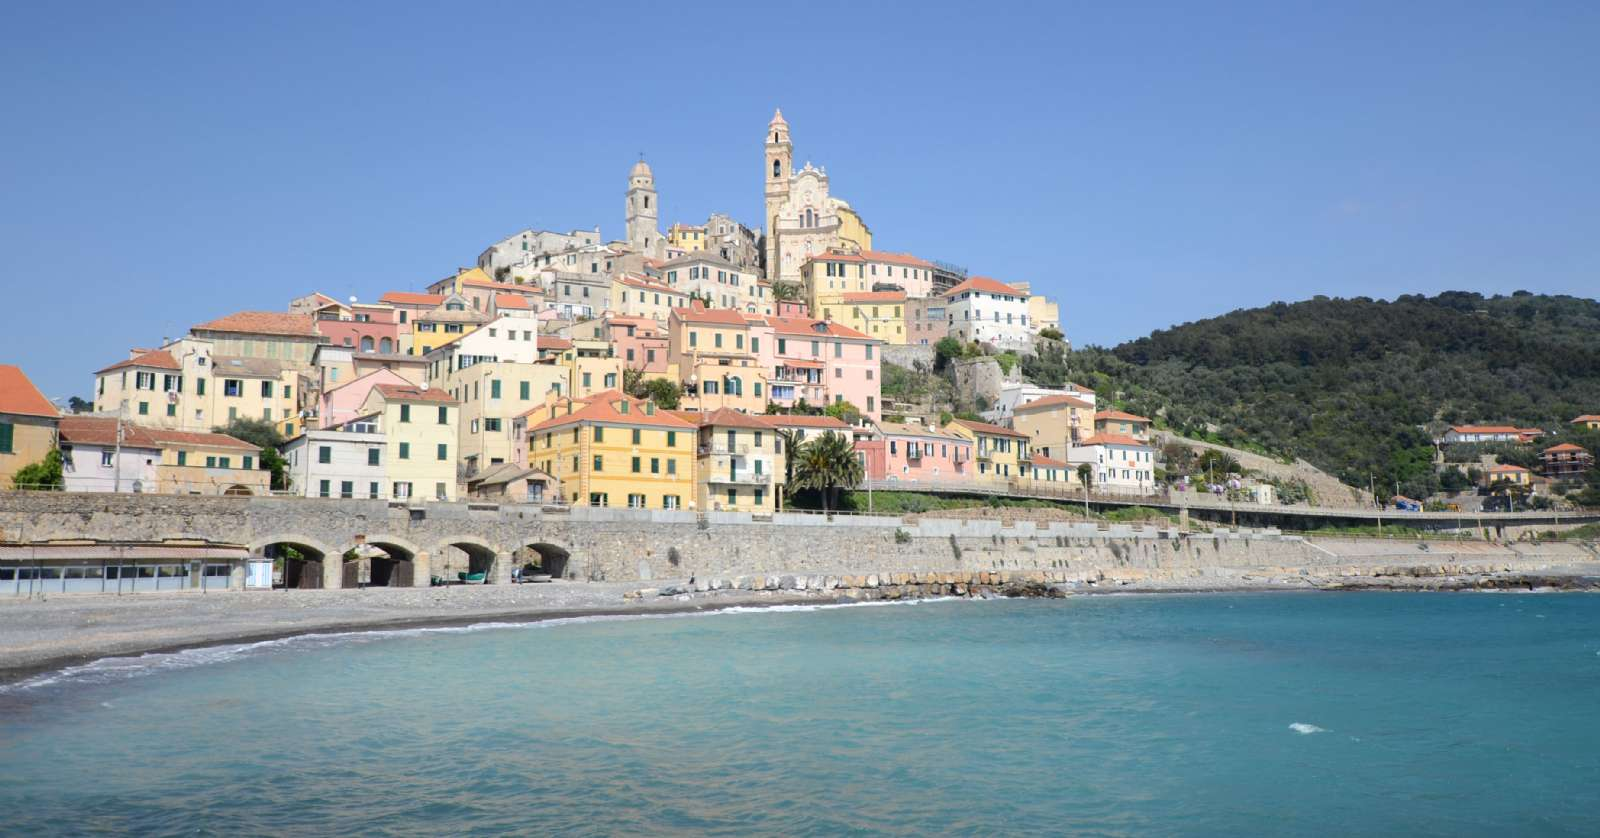 Cervo's picturesque outline